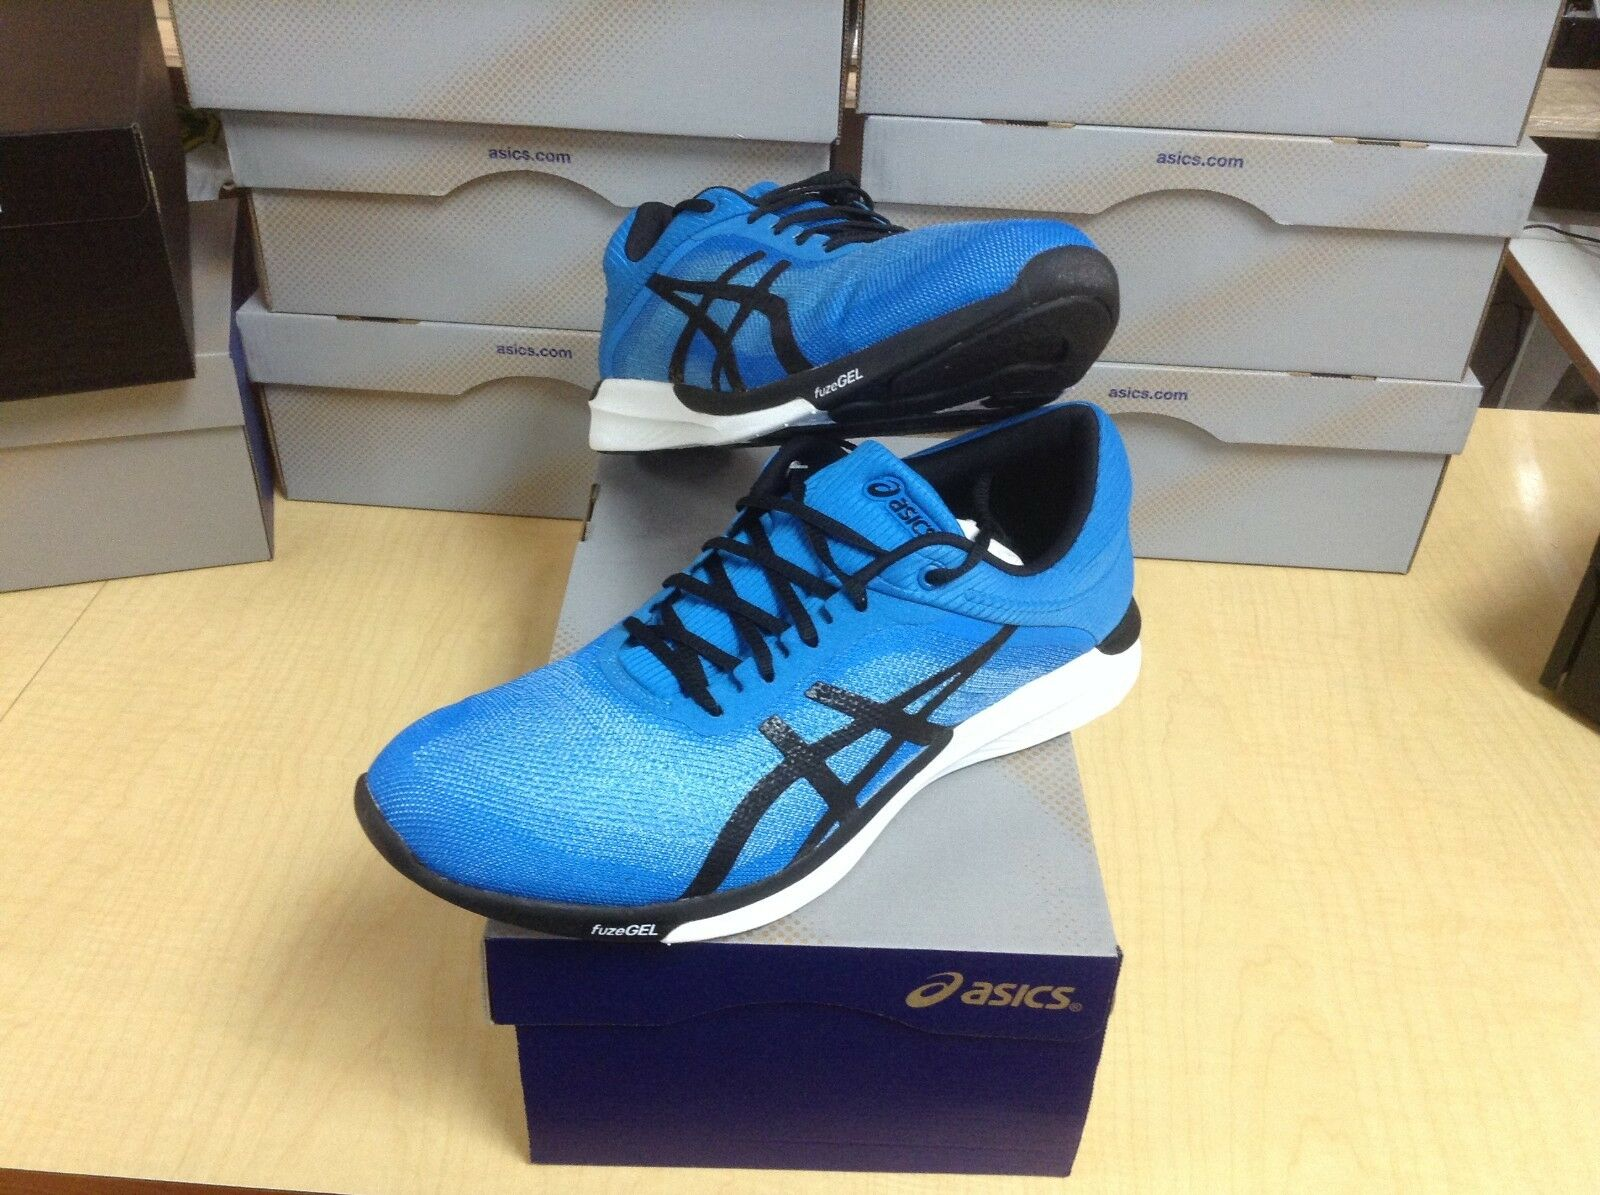 MEN'S ASICS - FUZEX RUSH (T718N-6790) - SIZE 9.5 - 40% OFF